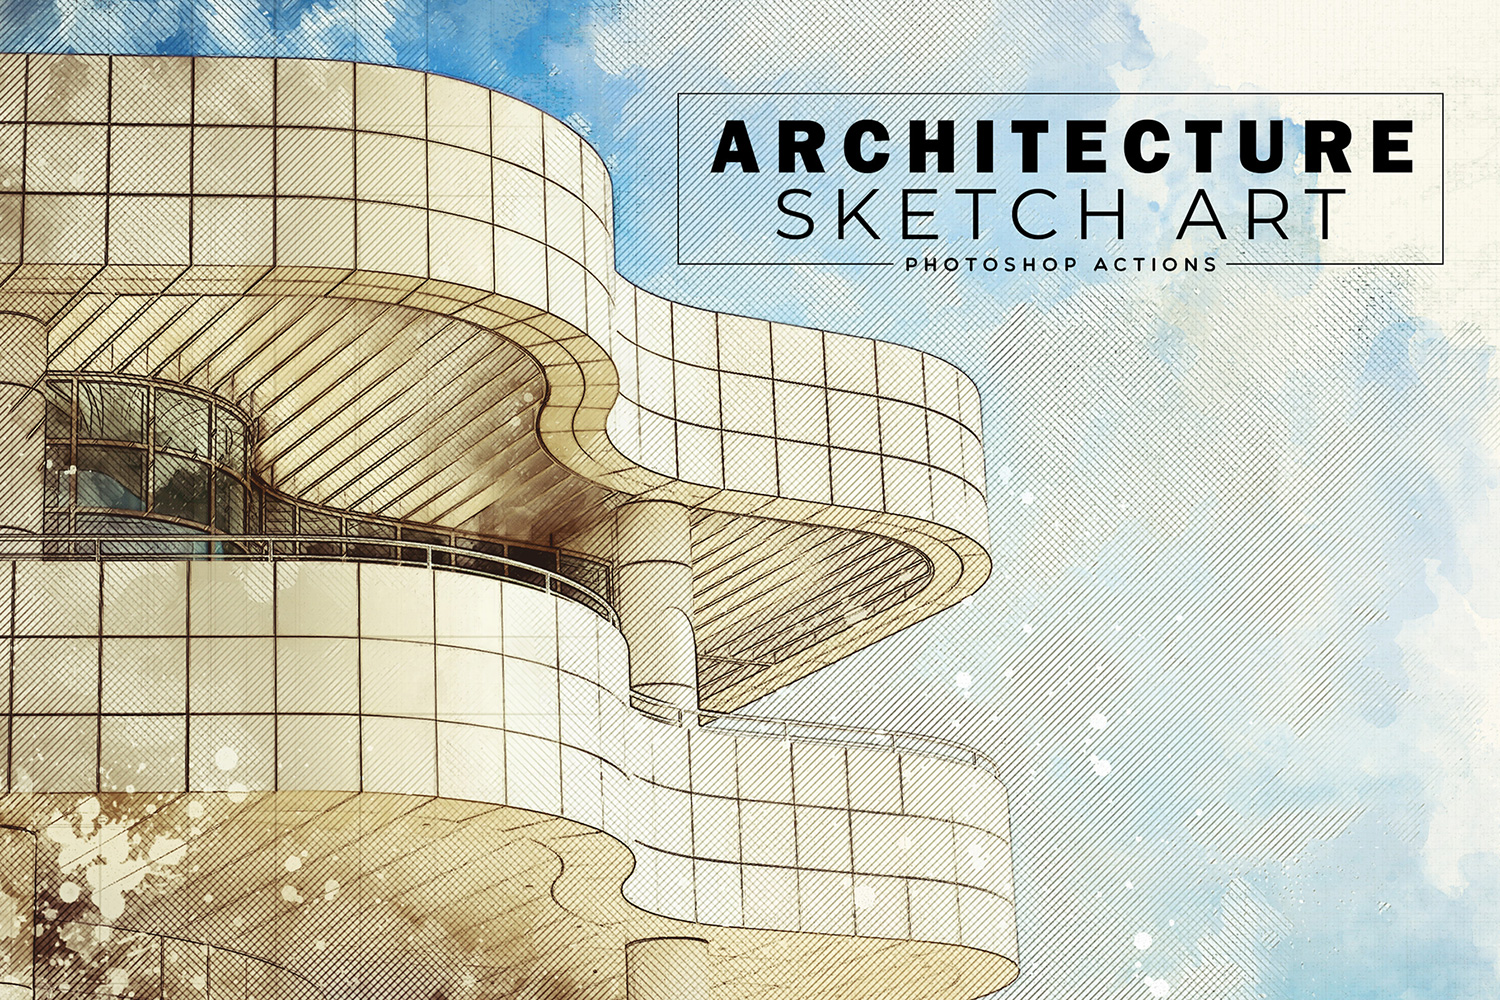 Architecture Sketch Art PS Actions example image 1